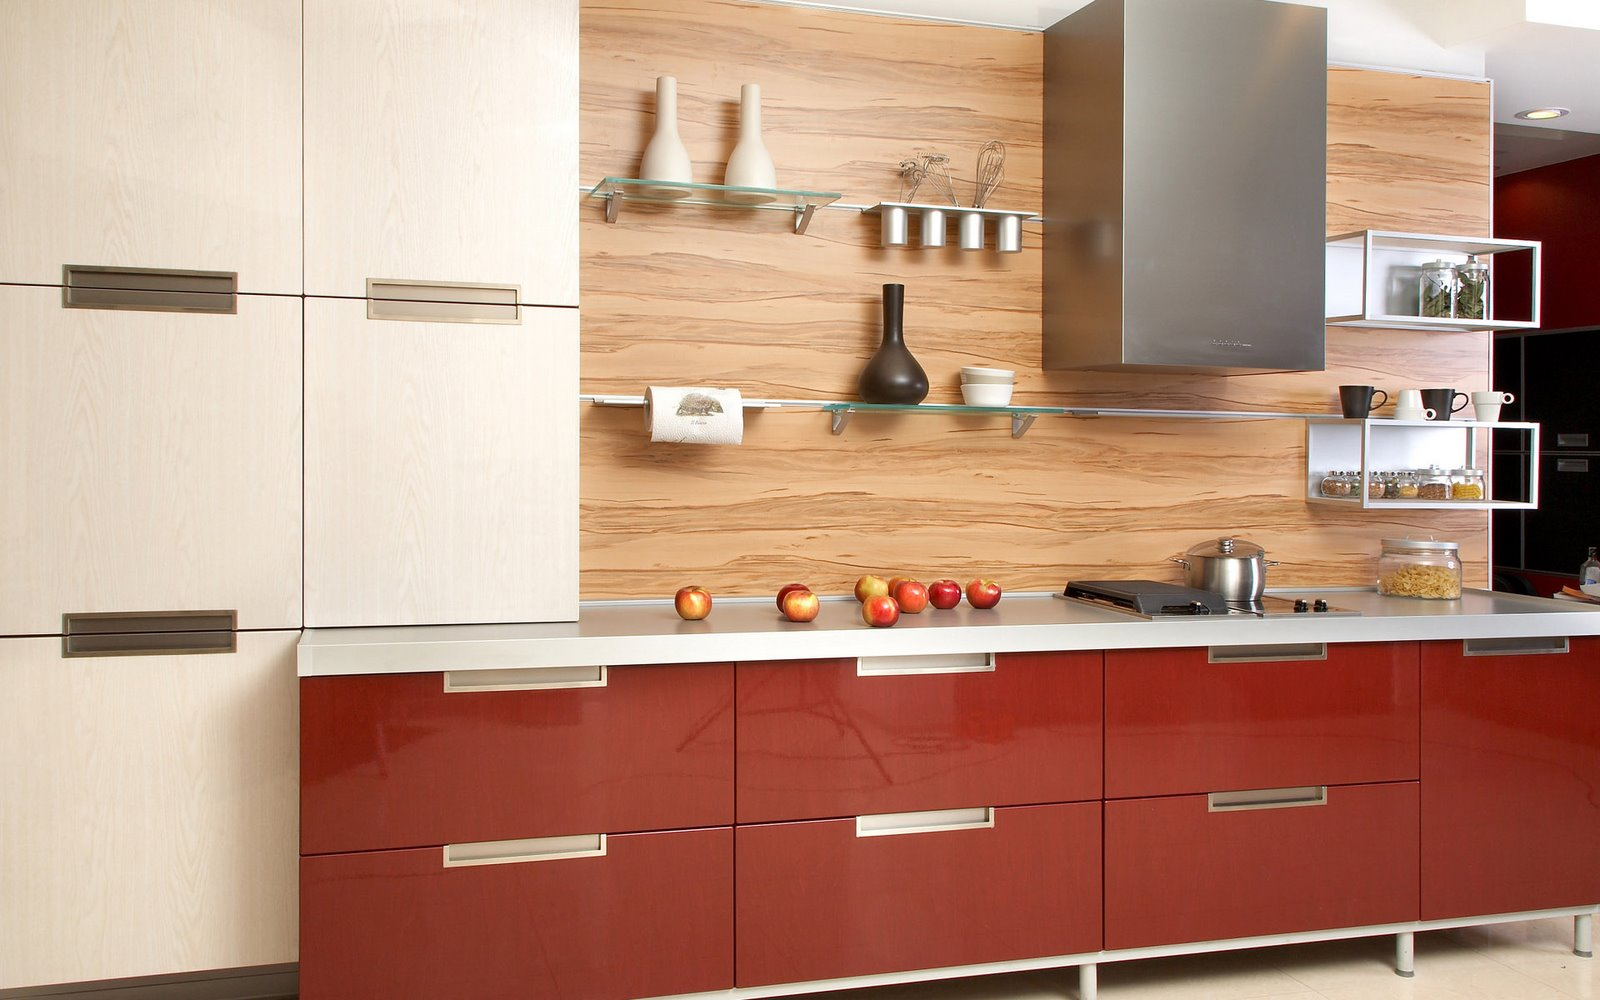 Remarkable Modern Kitchen CabiDesign 1600 x 1000 · 189 kB · jpeg